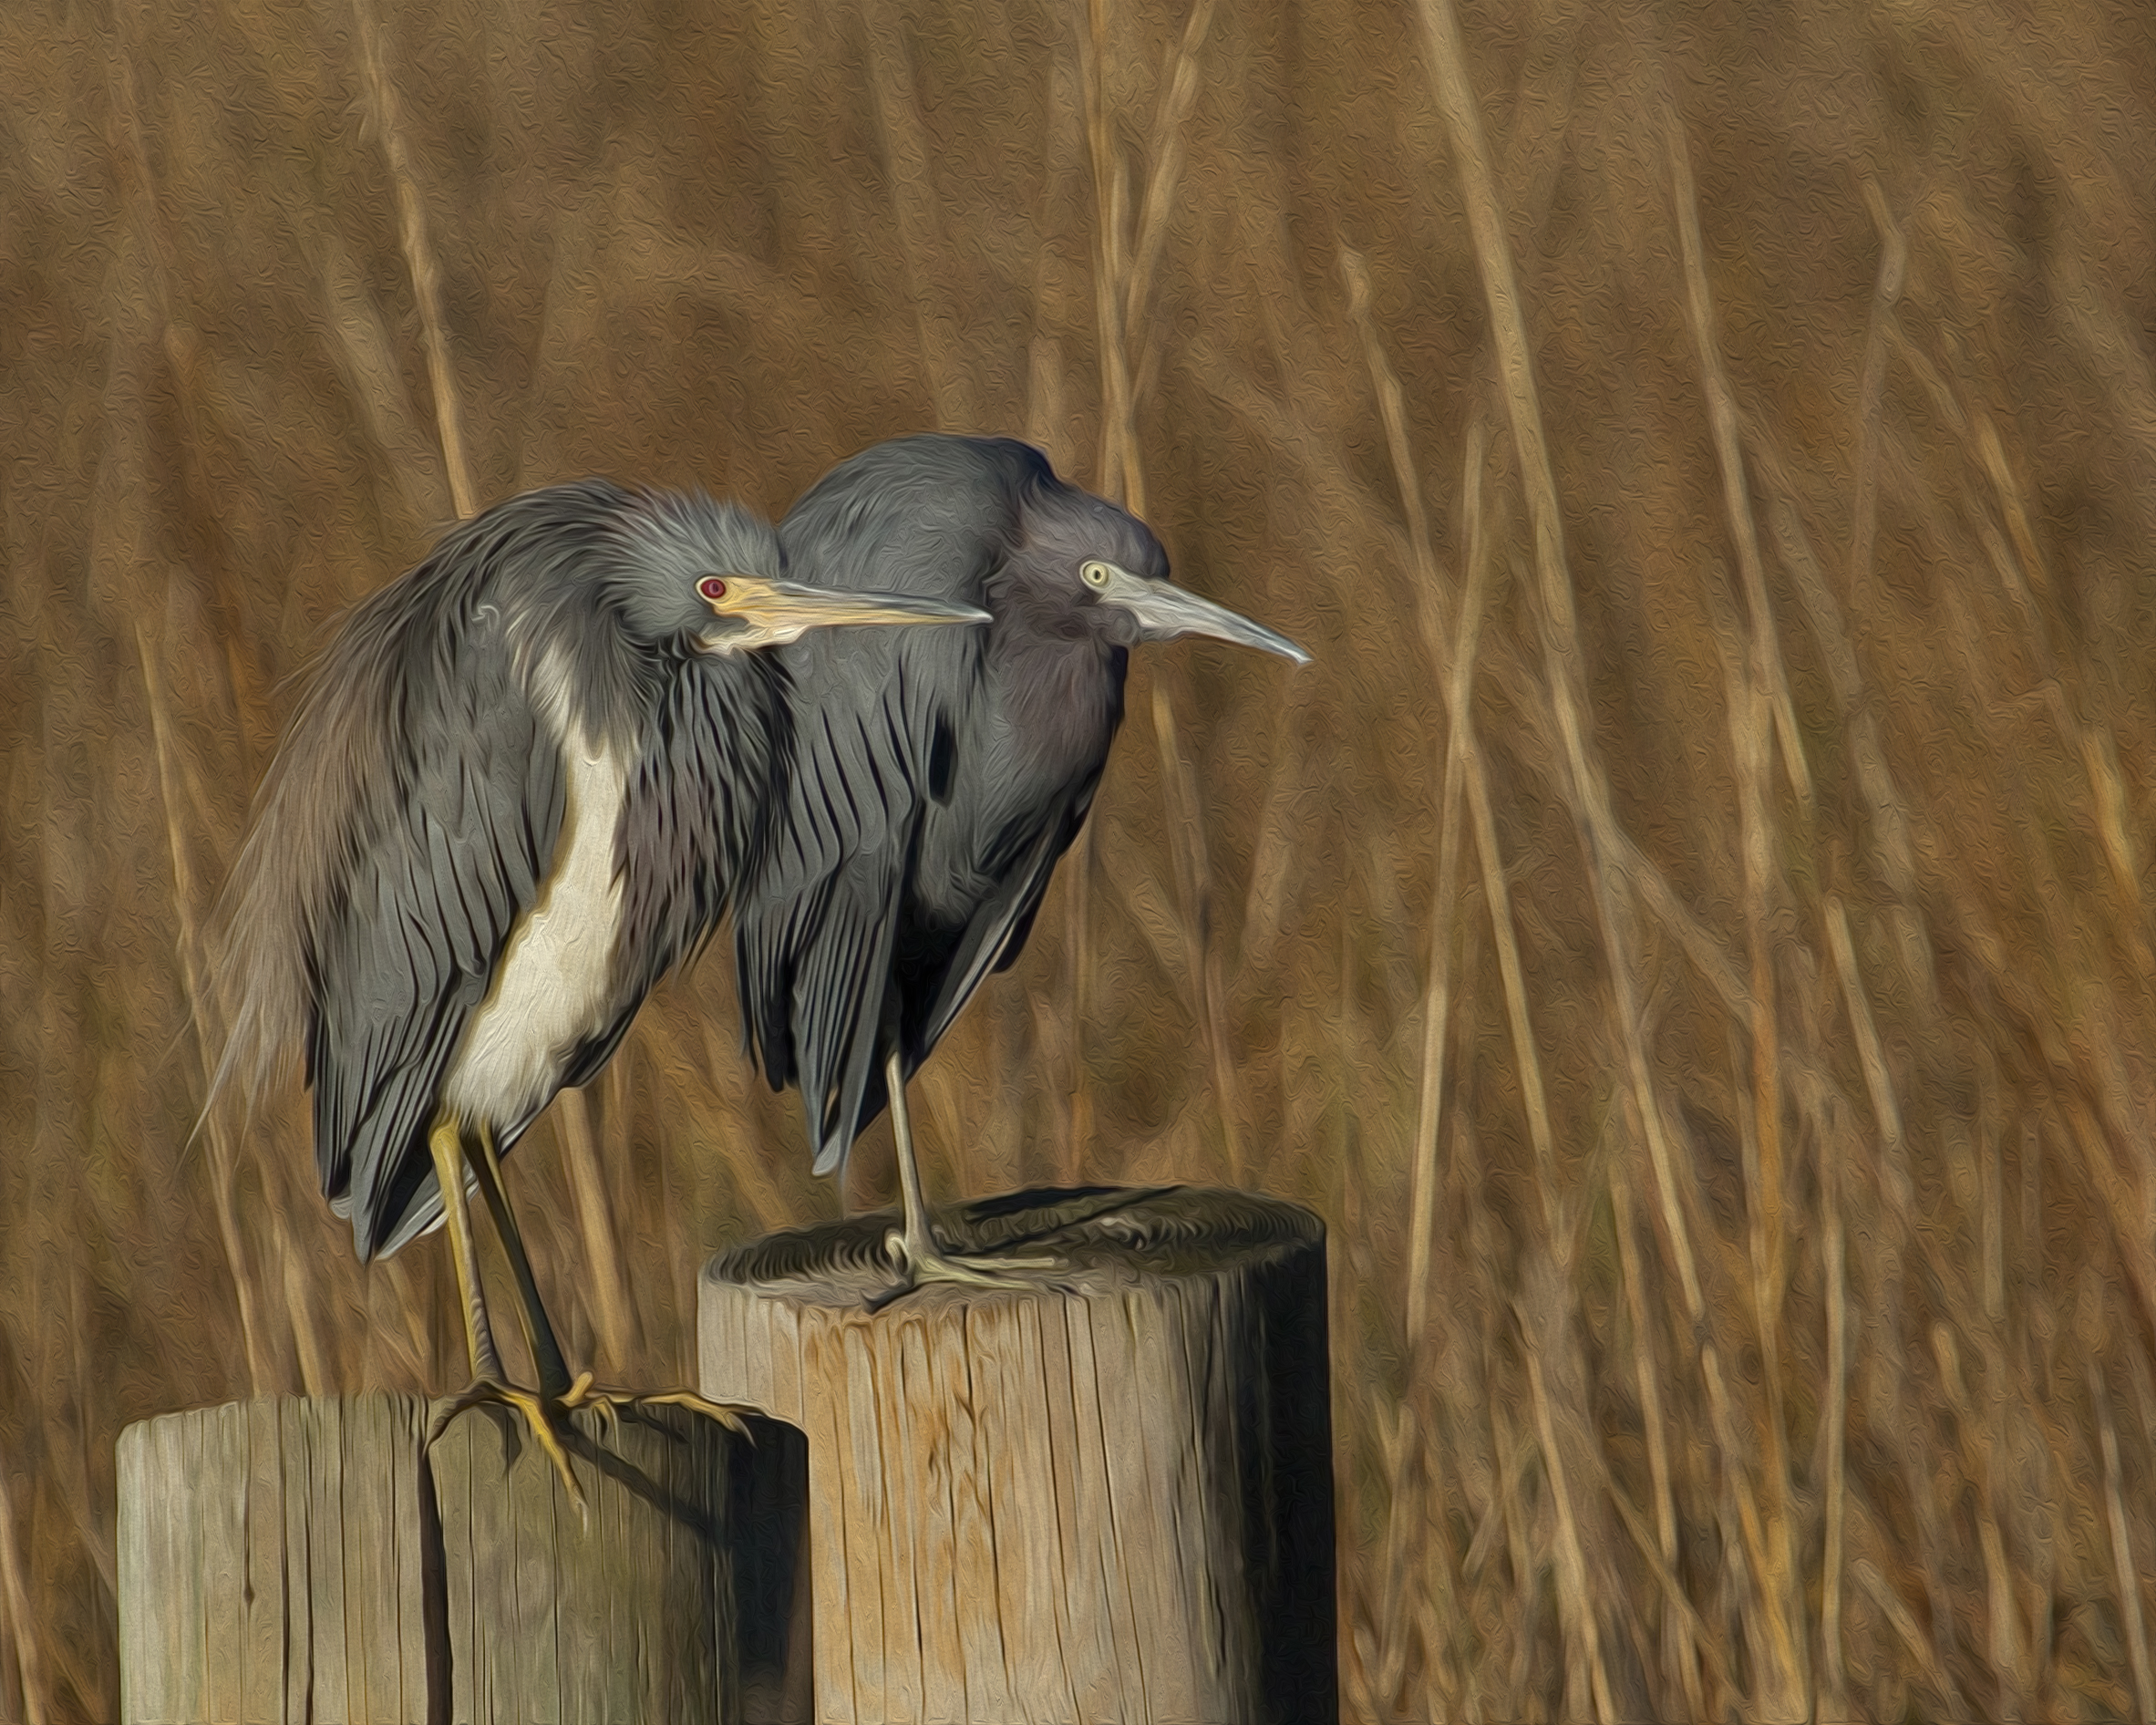 In this photo I took a pair of herons and again used the canvas artistic effect.